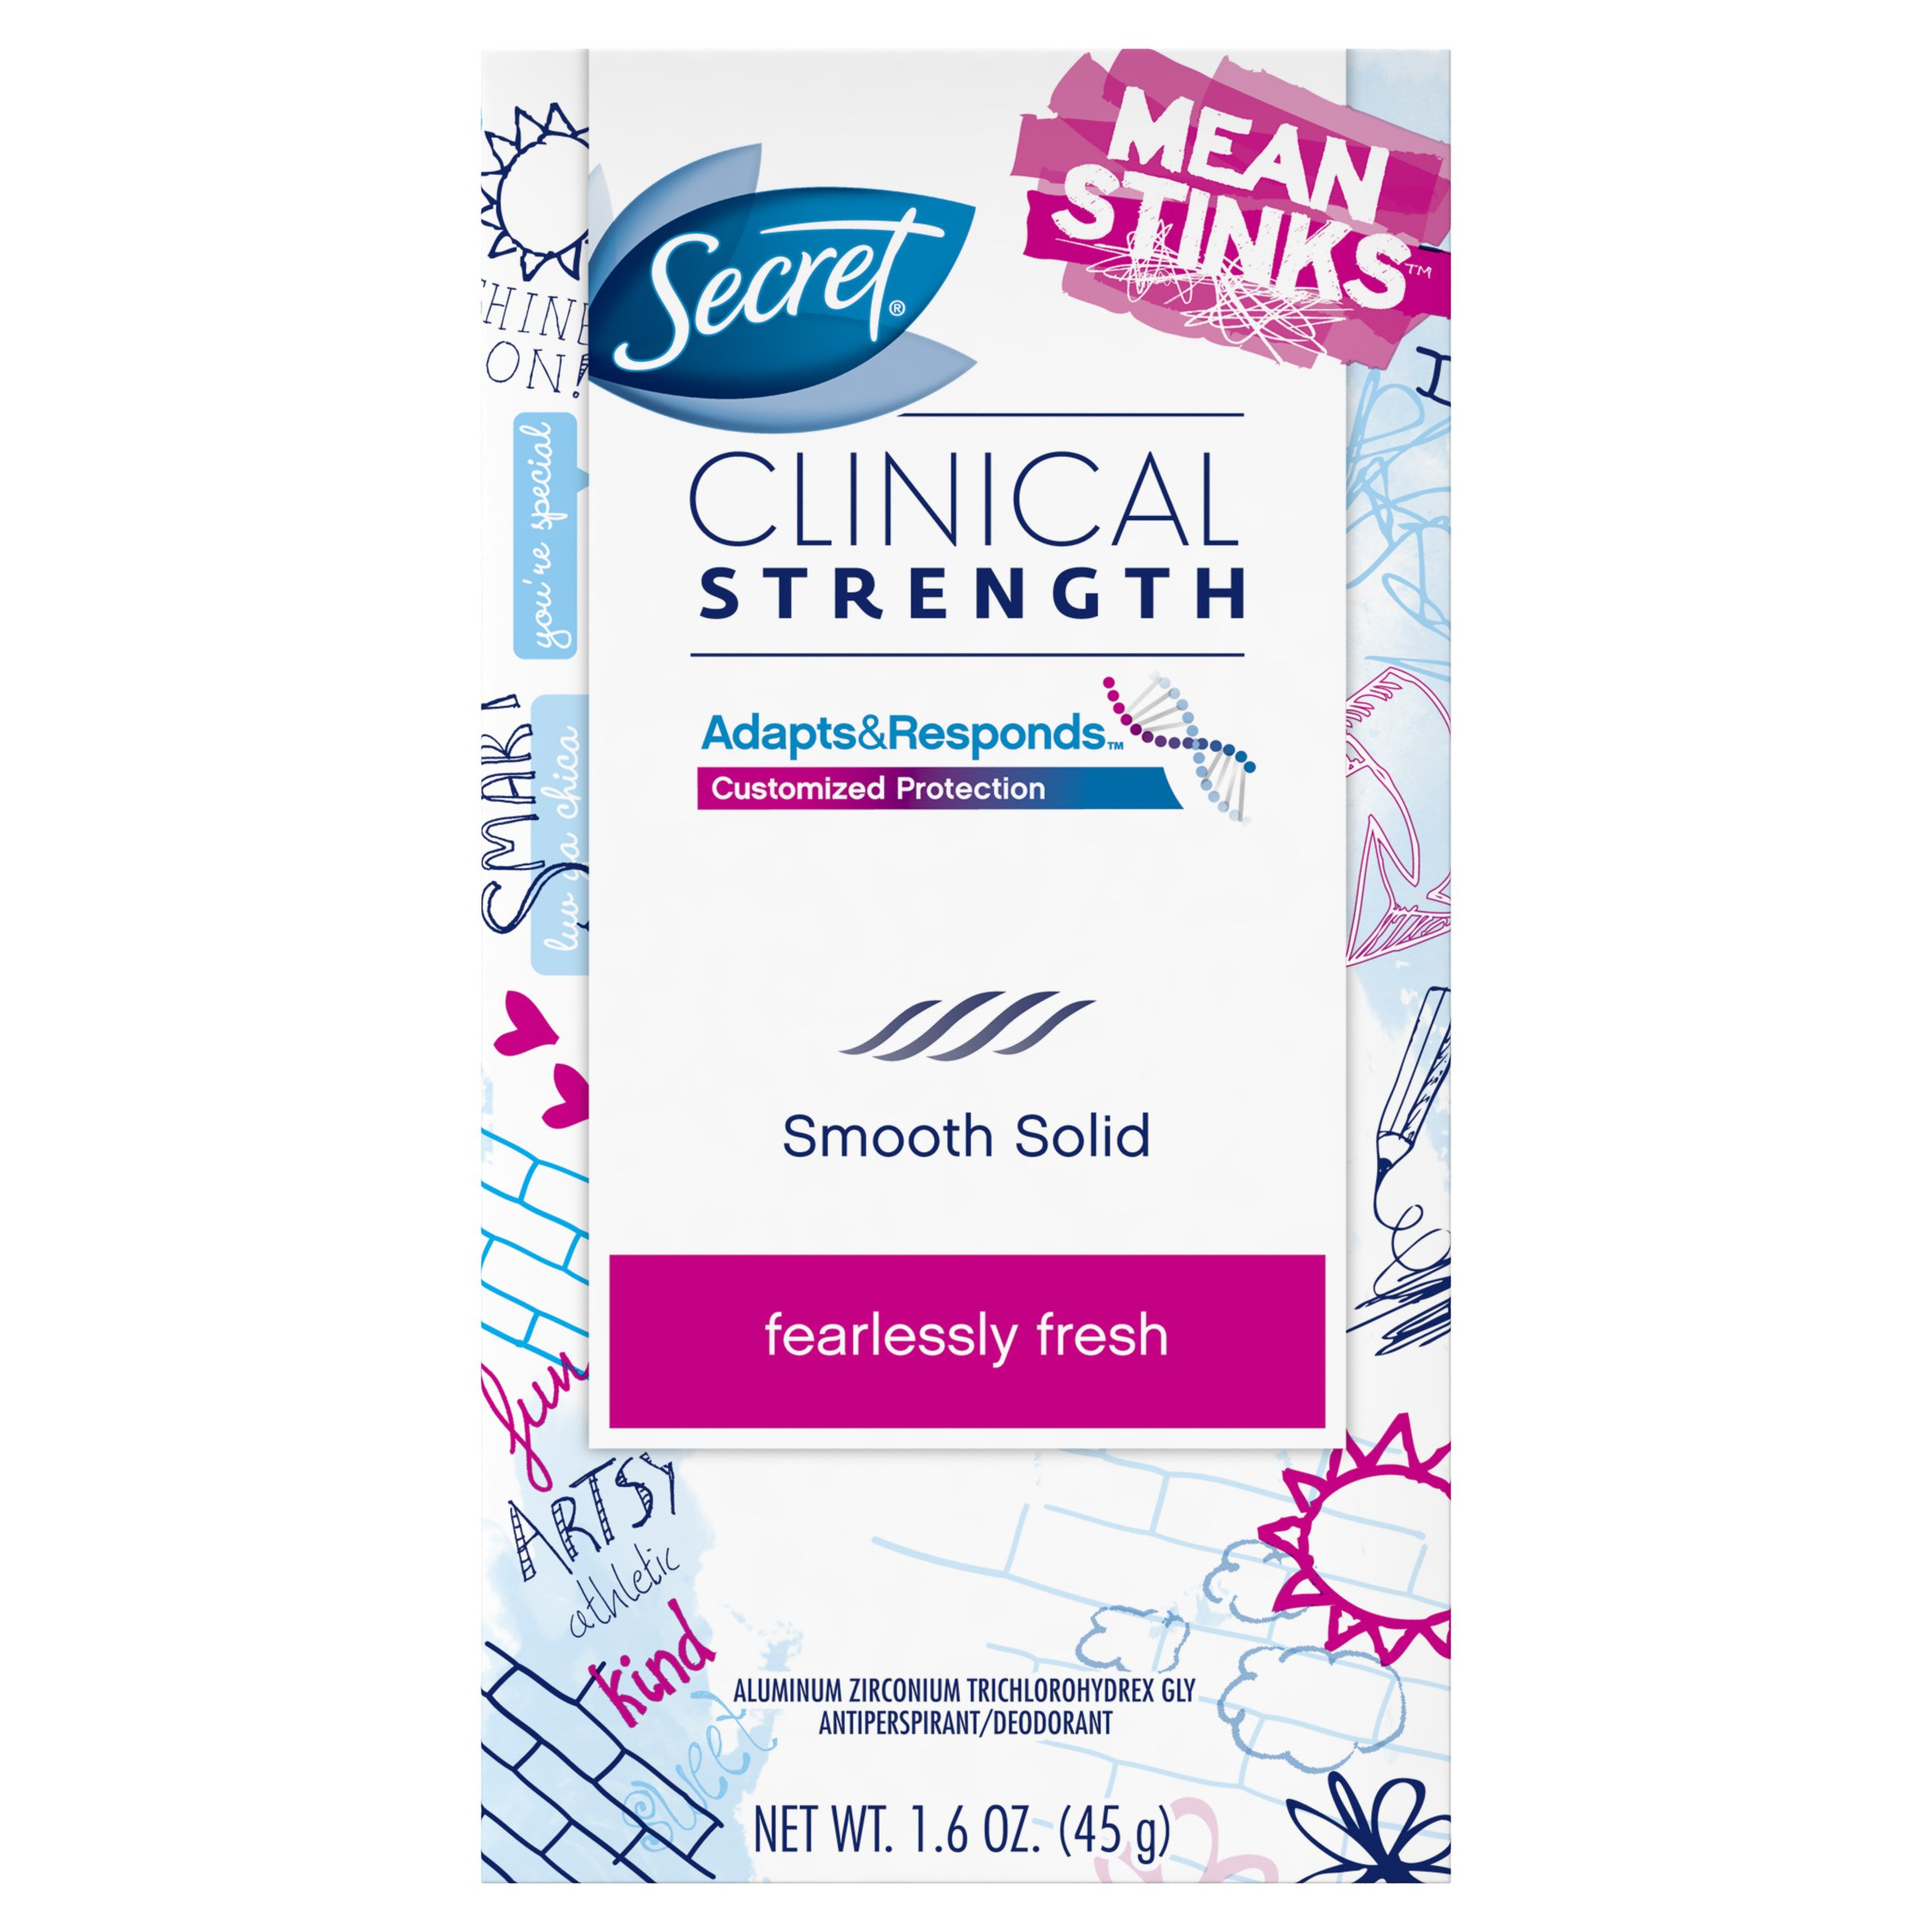 Secret Clinical Strength Mean Stinks Fearlessly Fresh Scent Advanced Solid Antiperspirant & Deodorant, 1.6 Oz